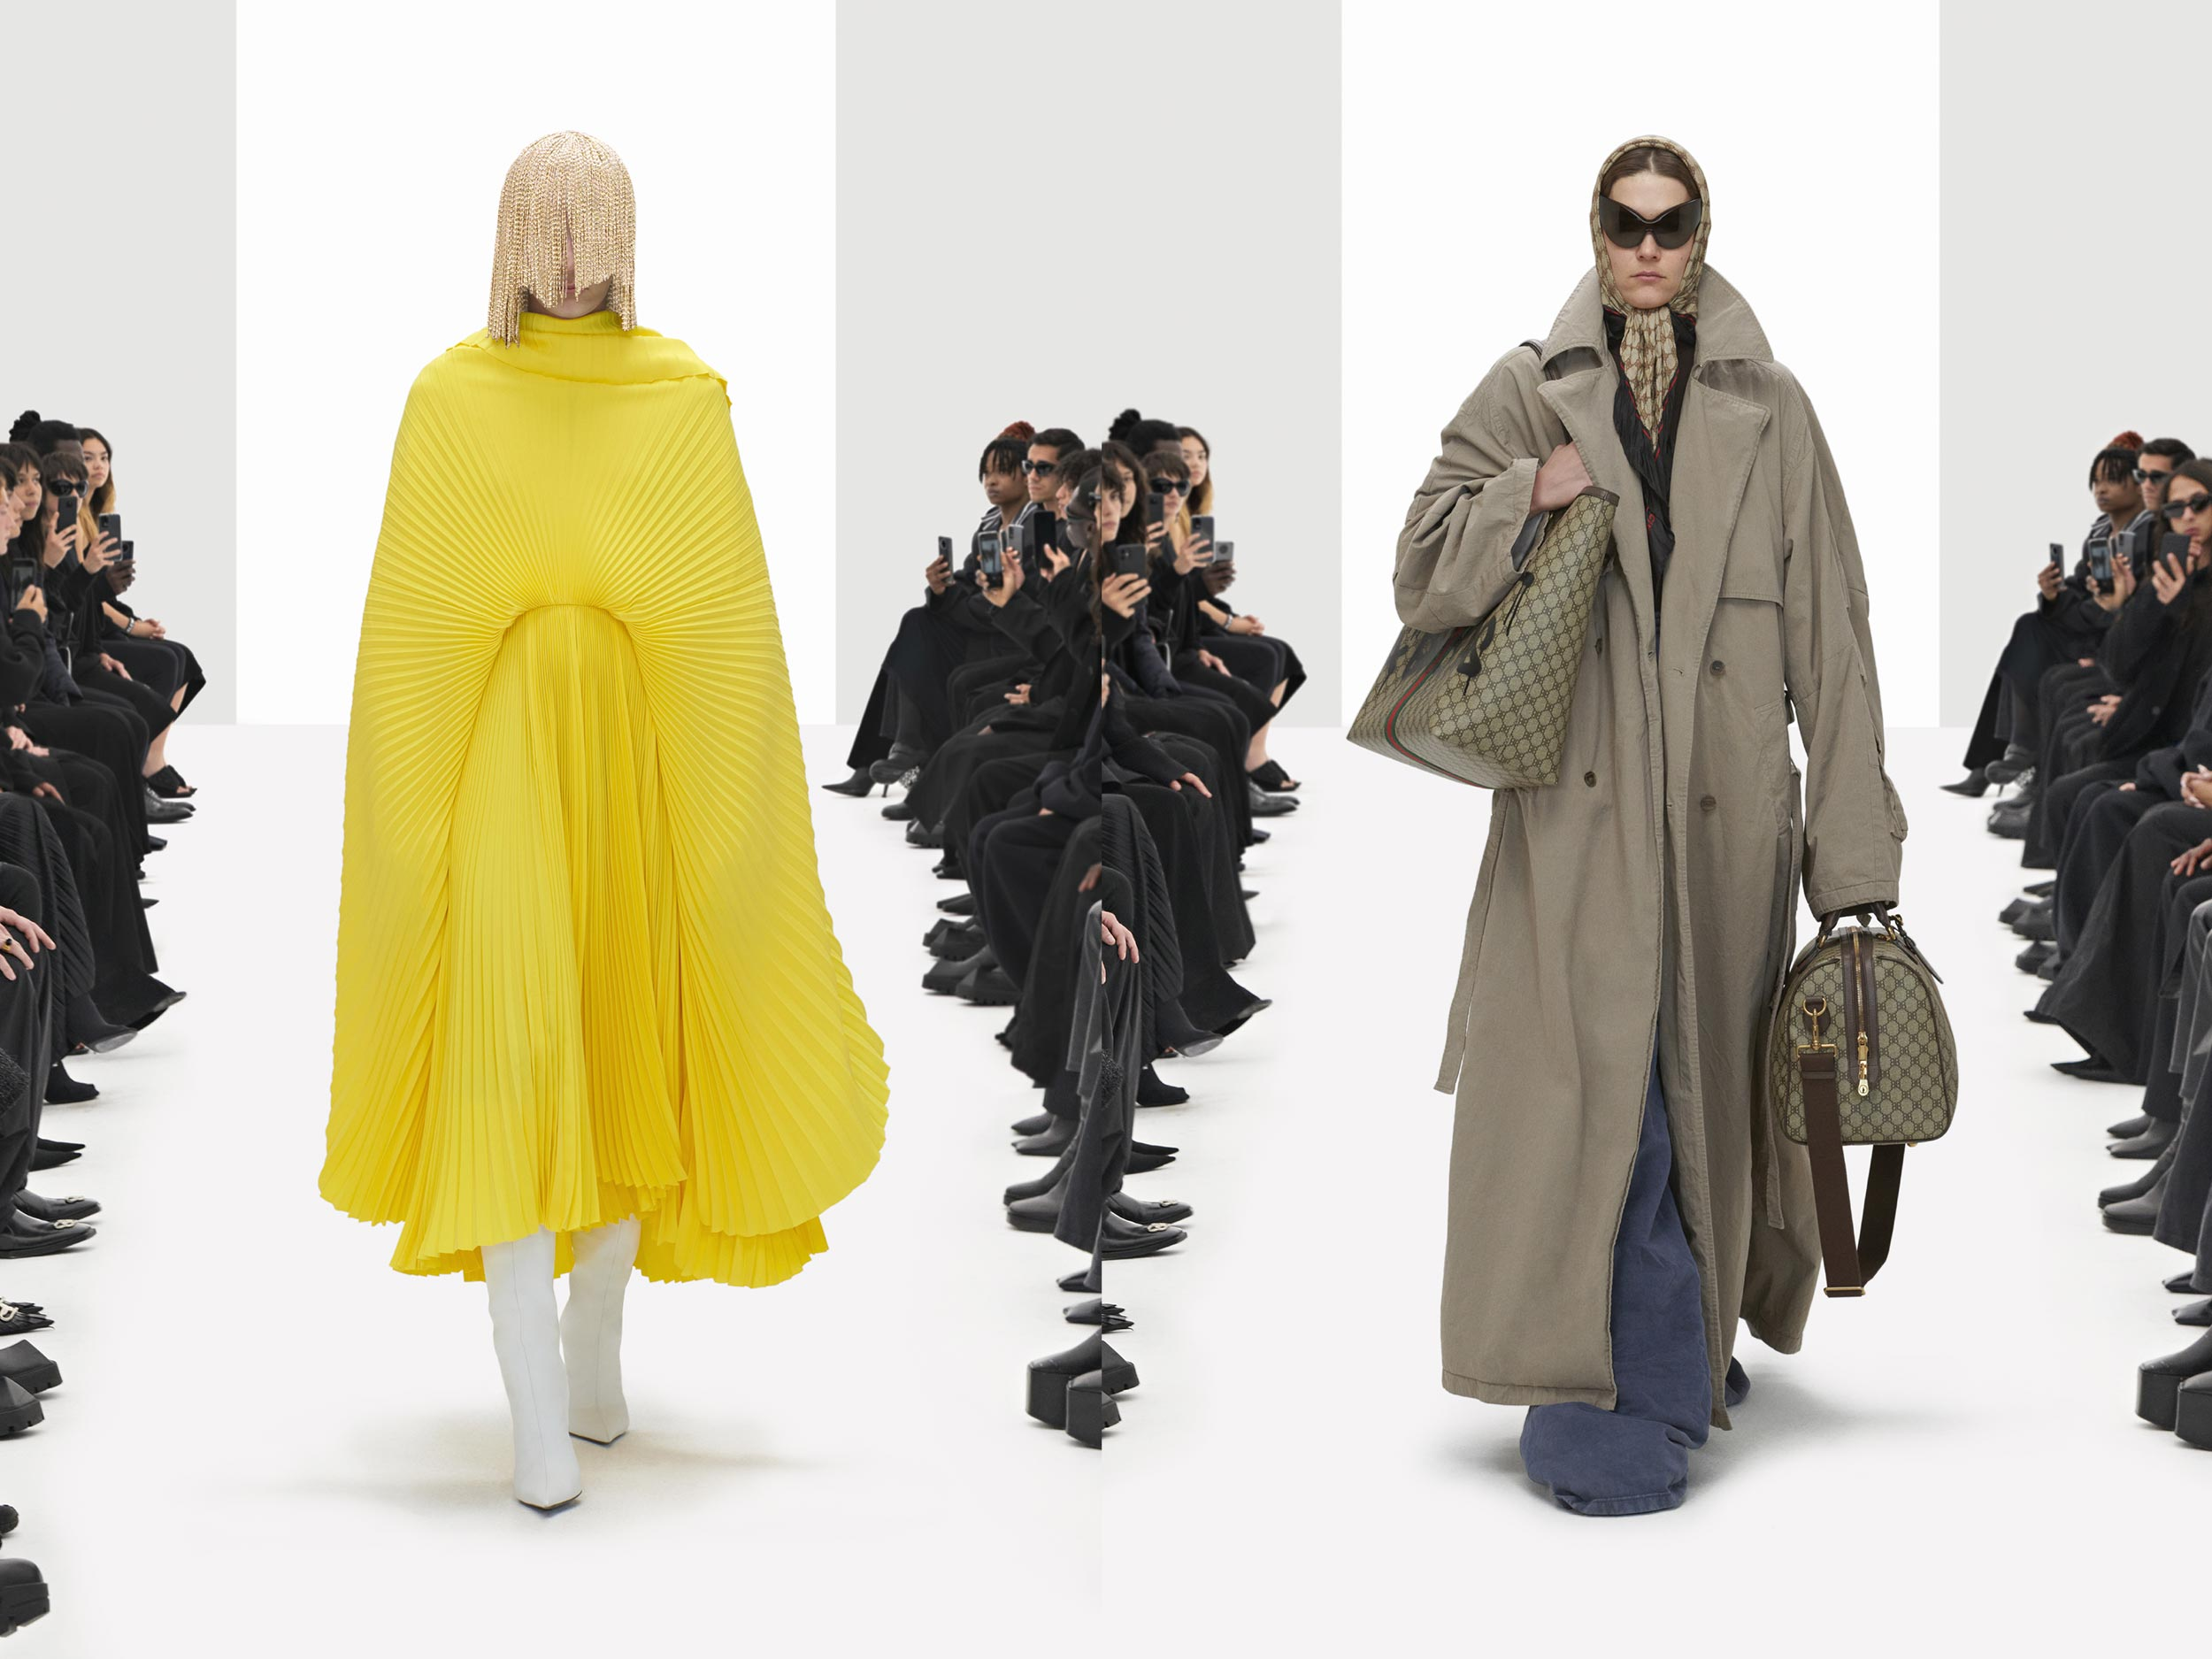 Balenciaga puts a satirical spin on our post-truth times